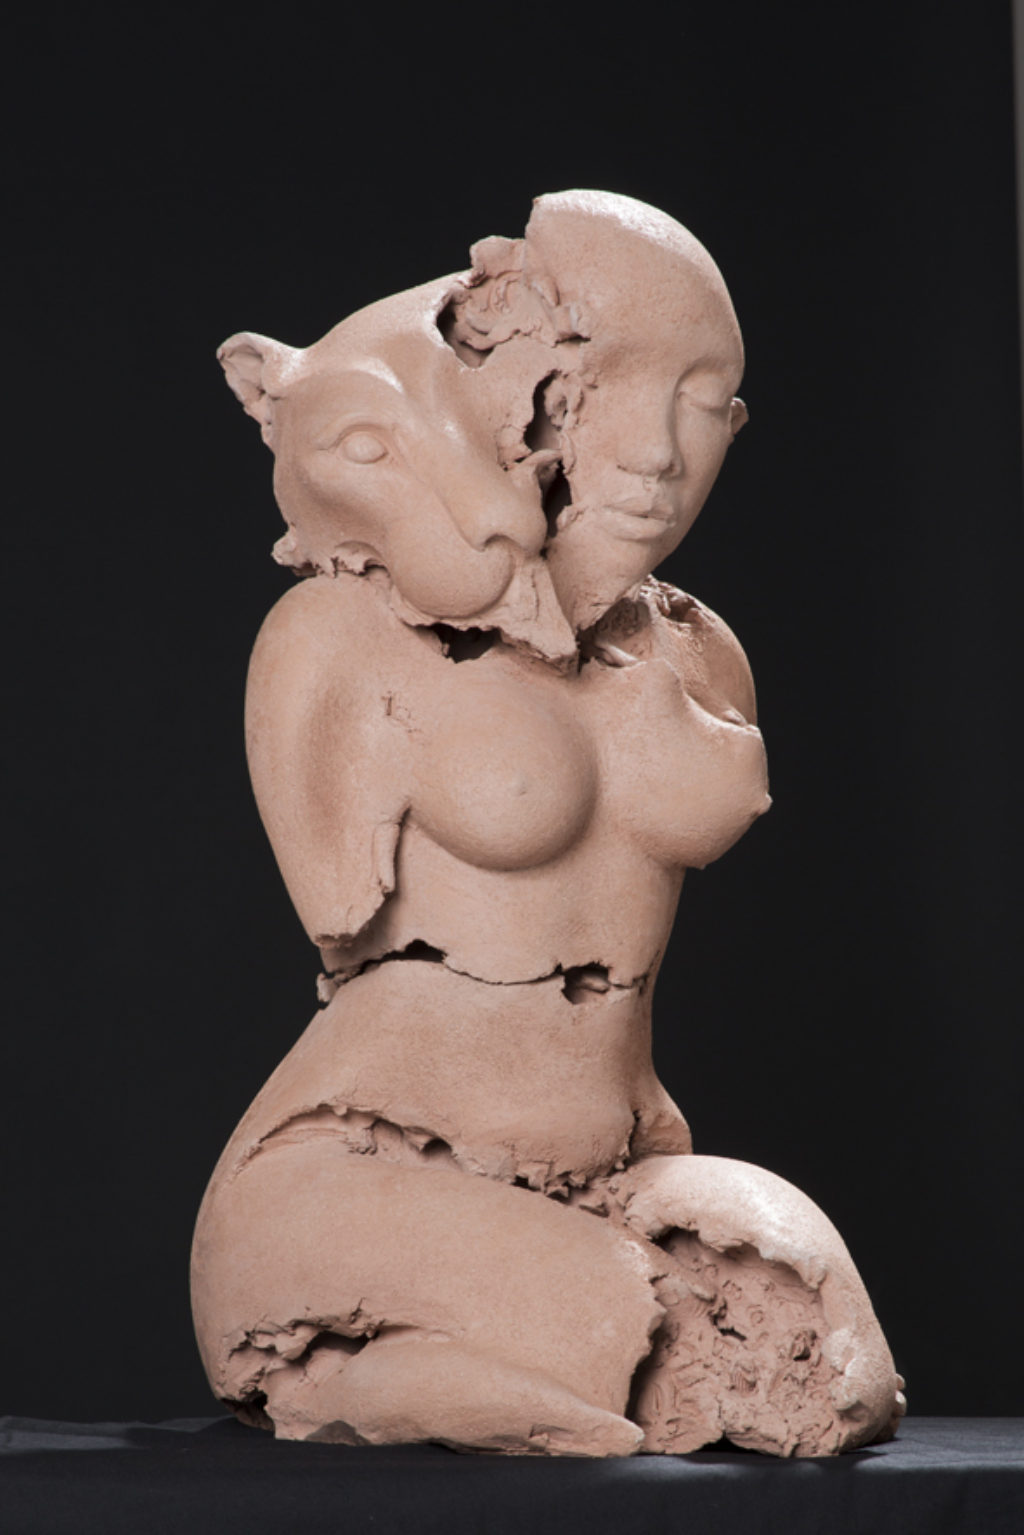 Lietta Morsiani, Guardiana, terracotta